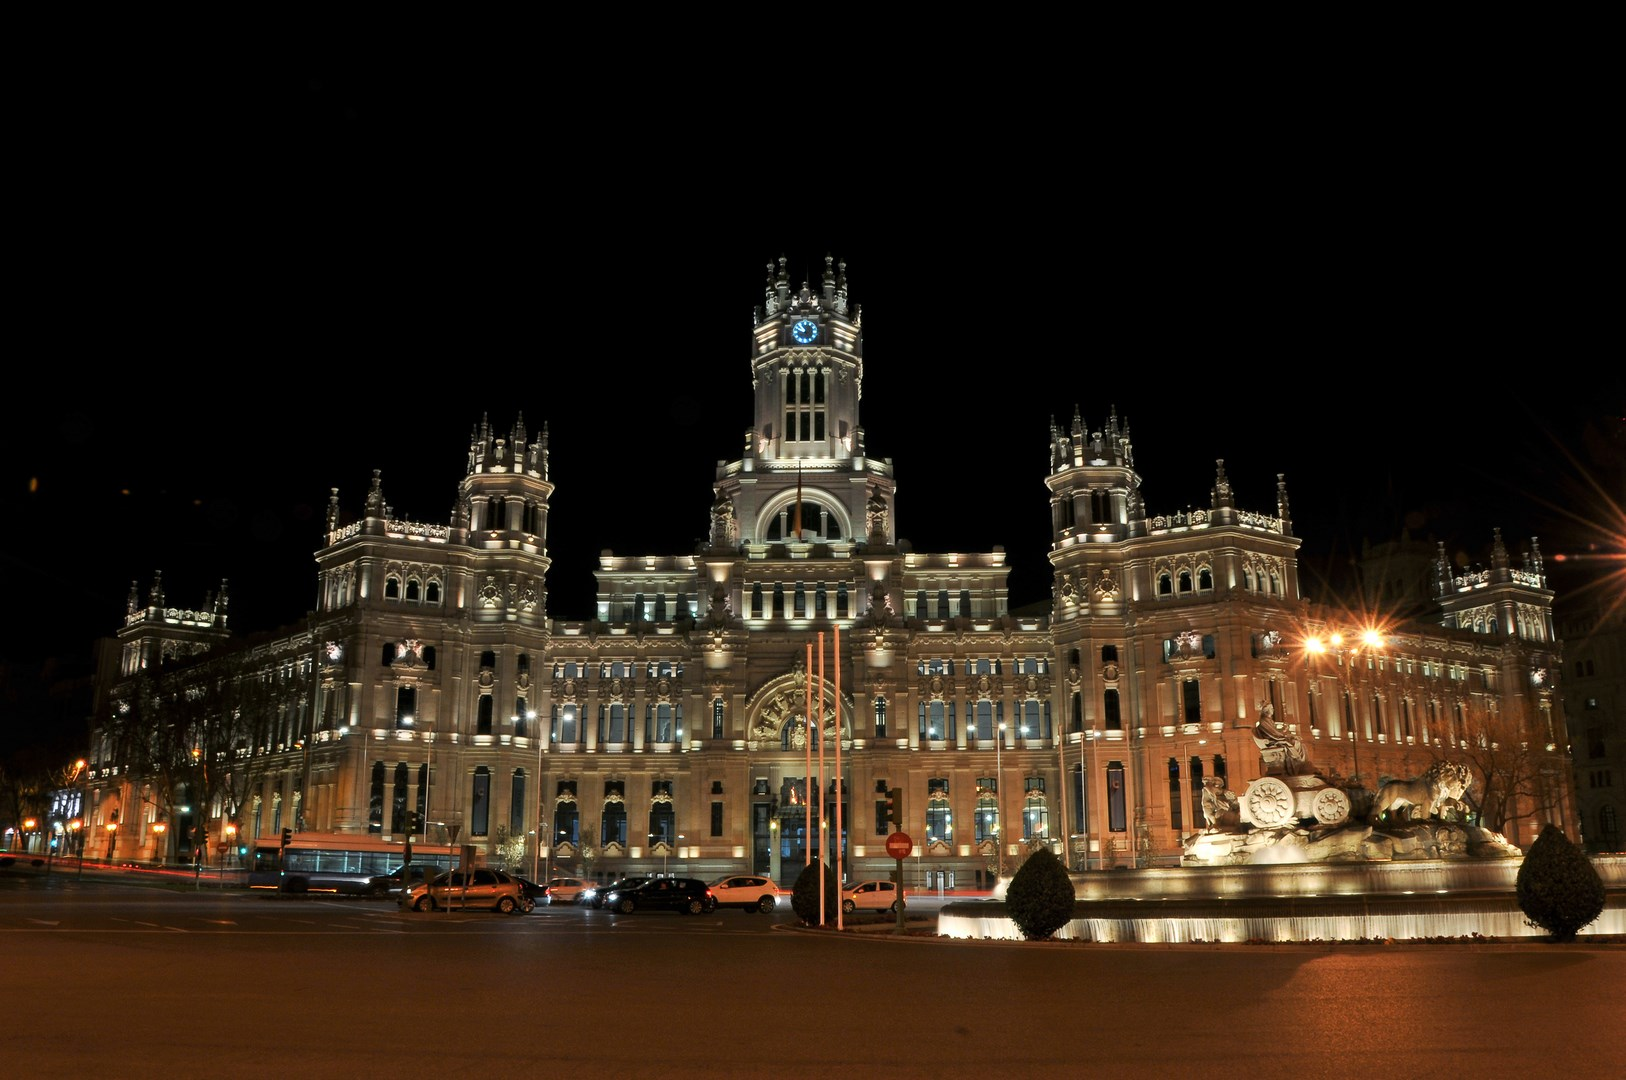 The Palace by night